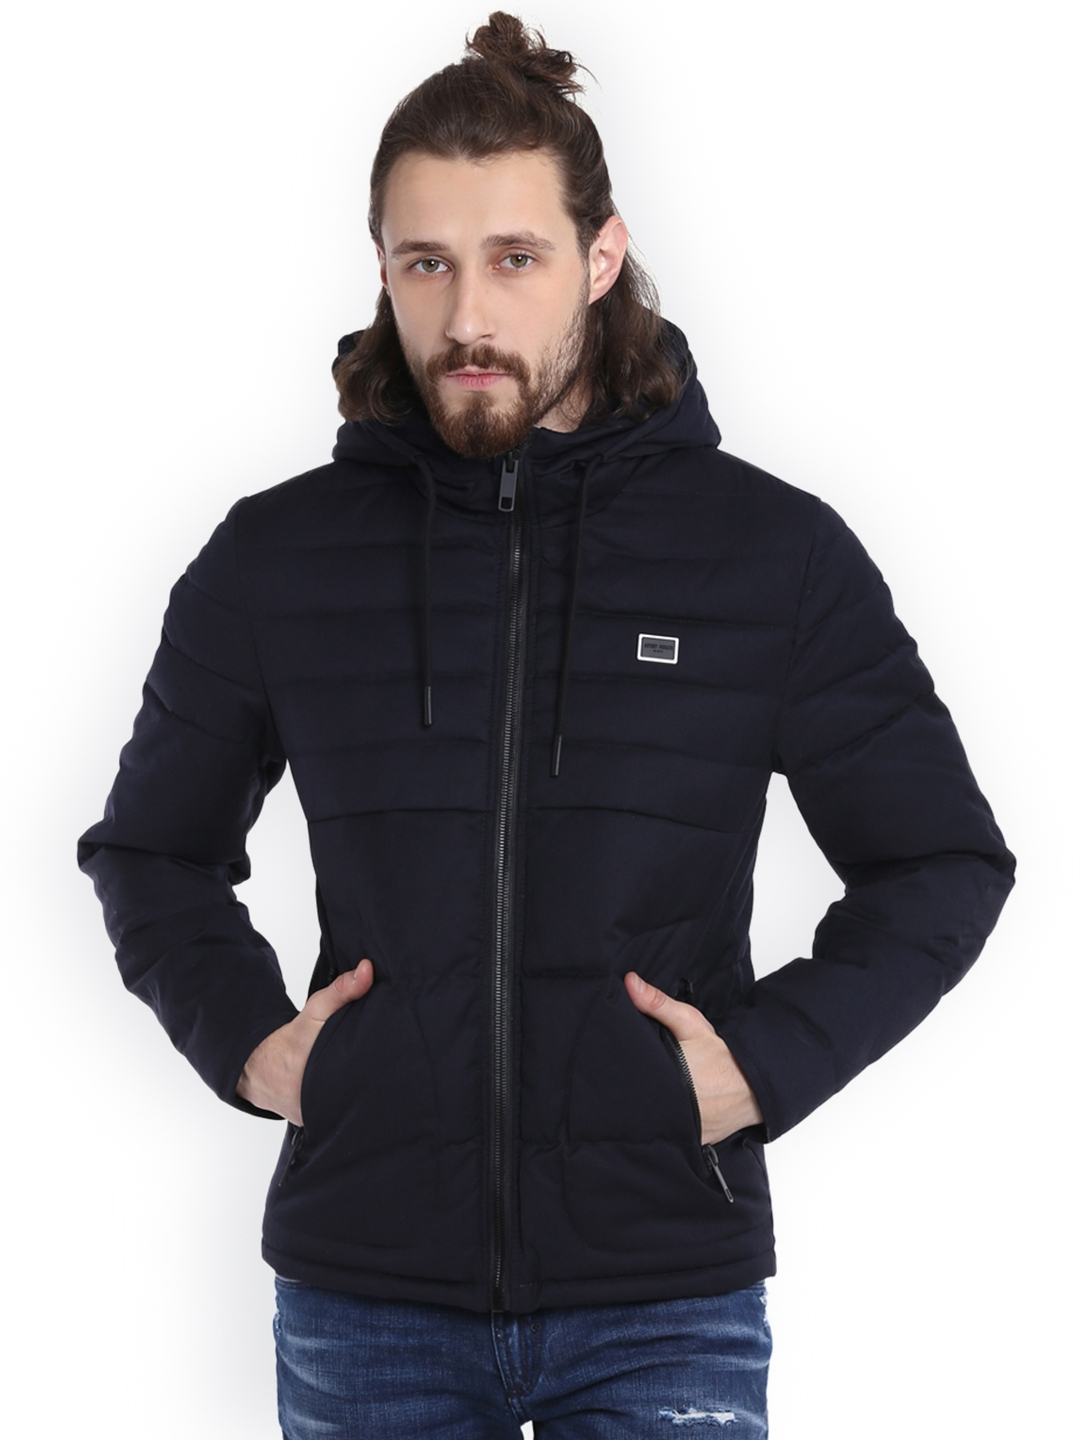 1a3ee0e18 Buy Antony Morato Men Navy Blue Solid Puffer Jacket - Jackets for ...